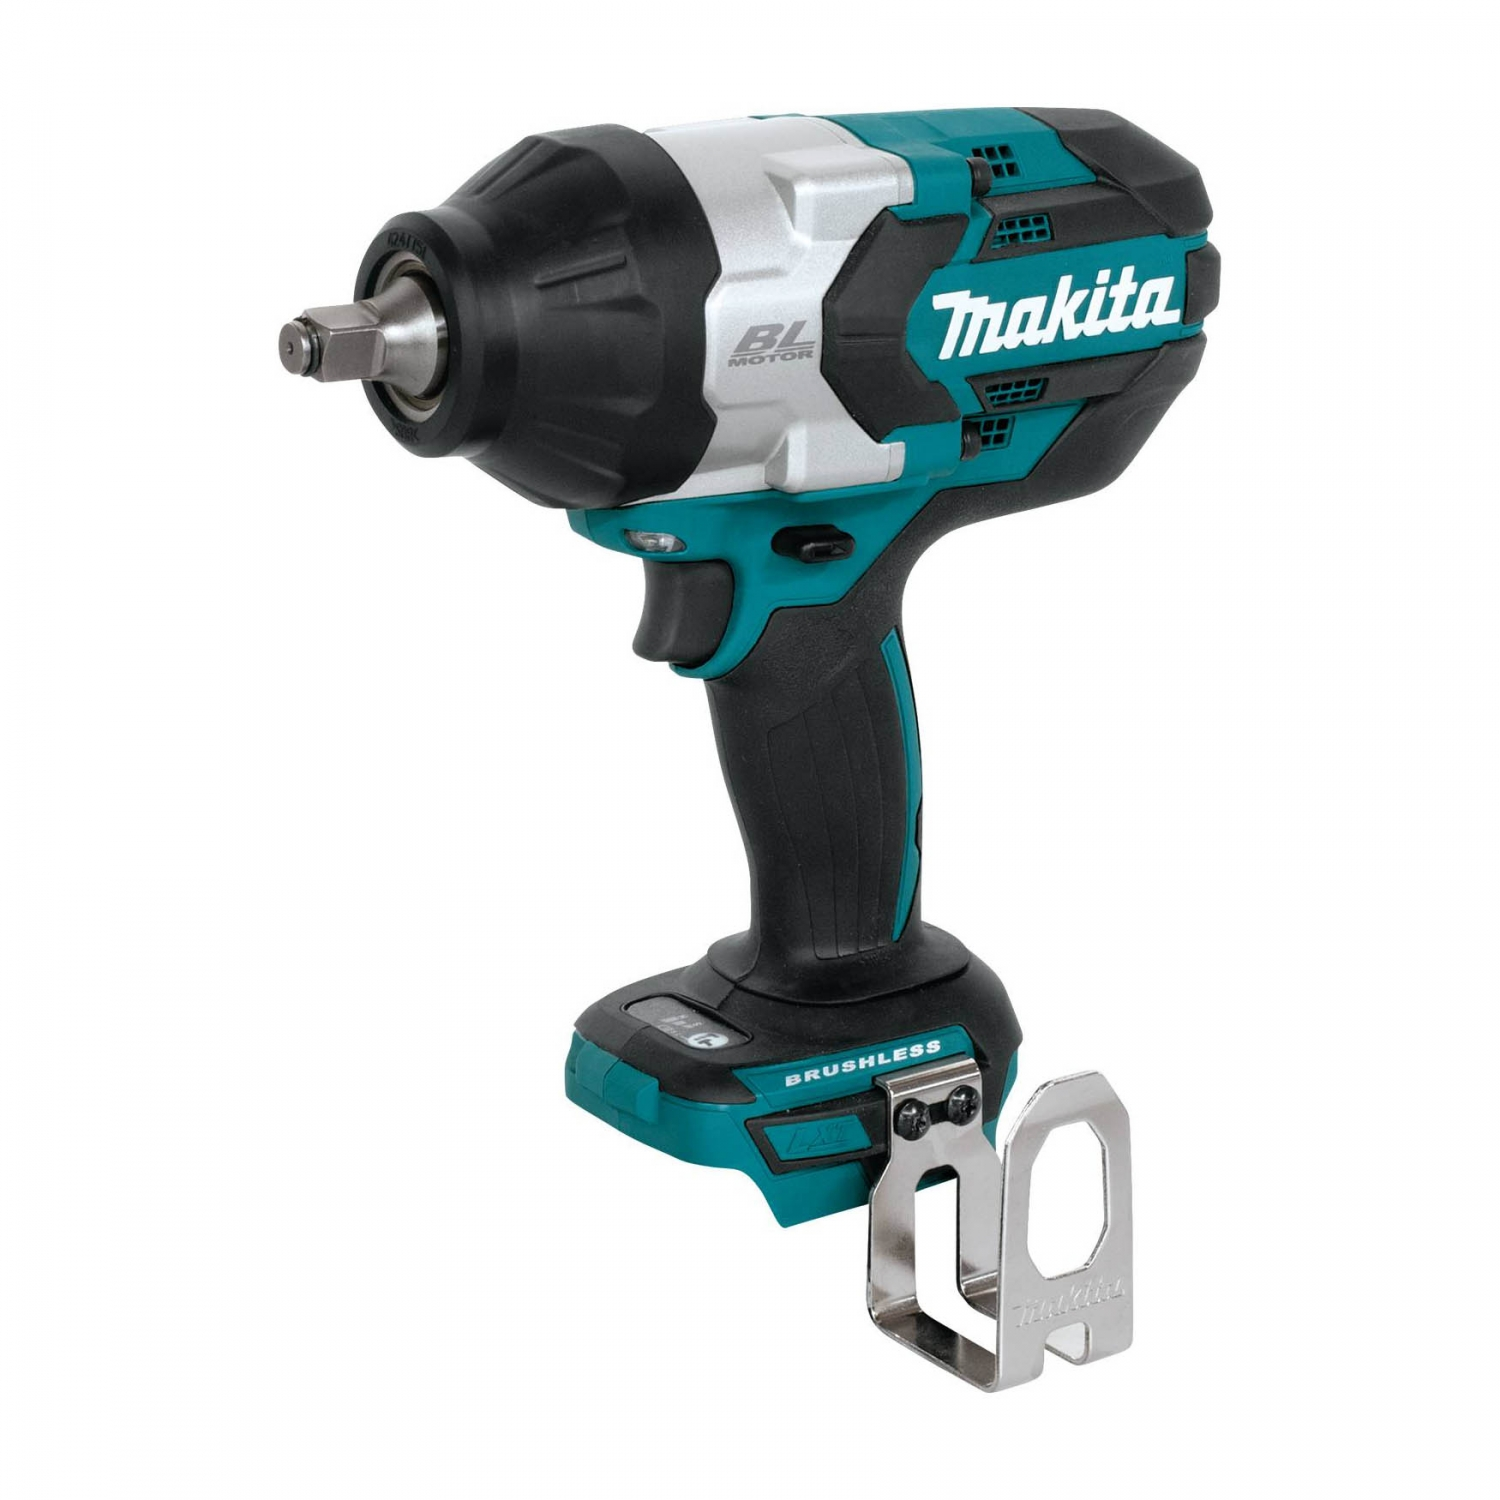 Details About Makita Xwt08z 18v High Torque 1 2 Inch Sq Drive Impact Driver Tool Only